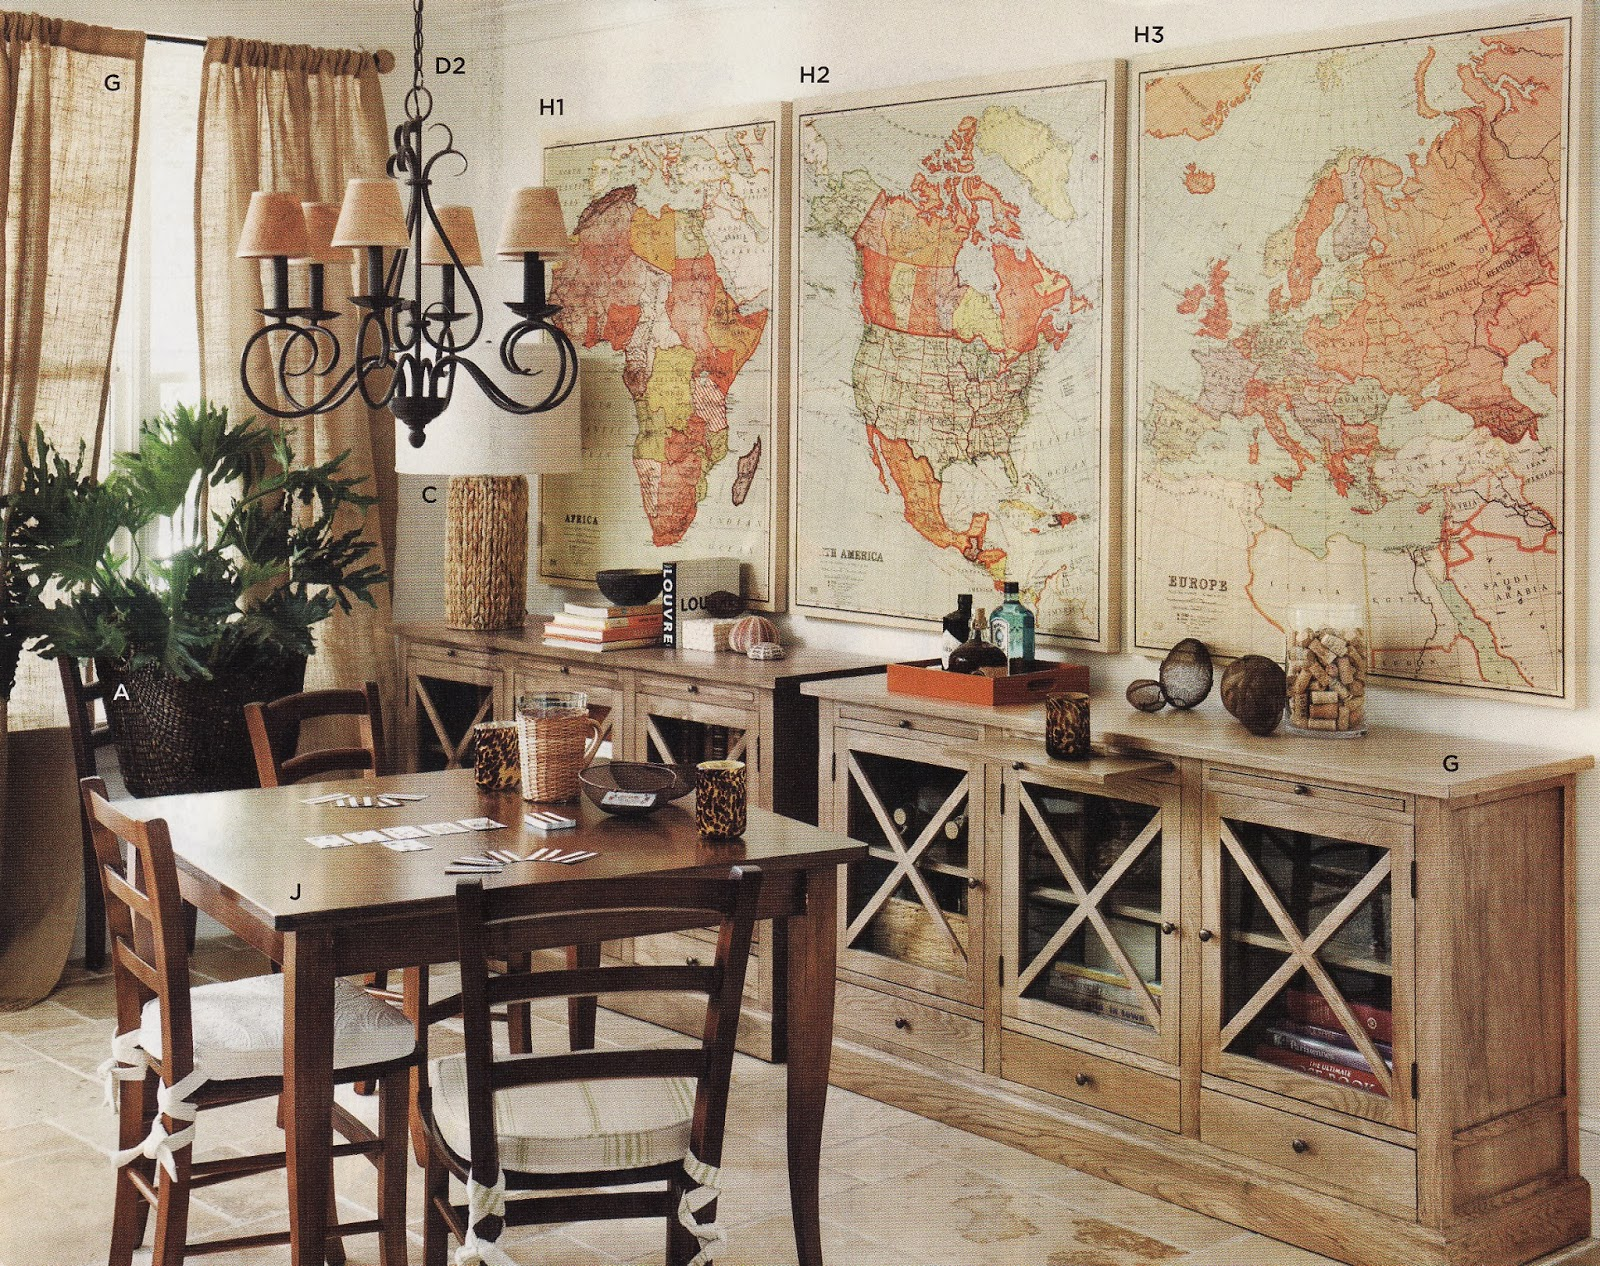 Creative juices decor oh for the love of maps home for Home decor ideas at home